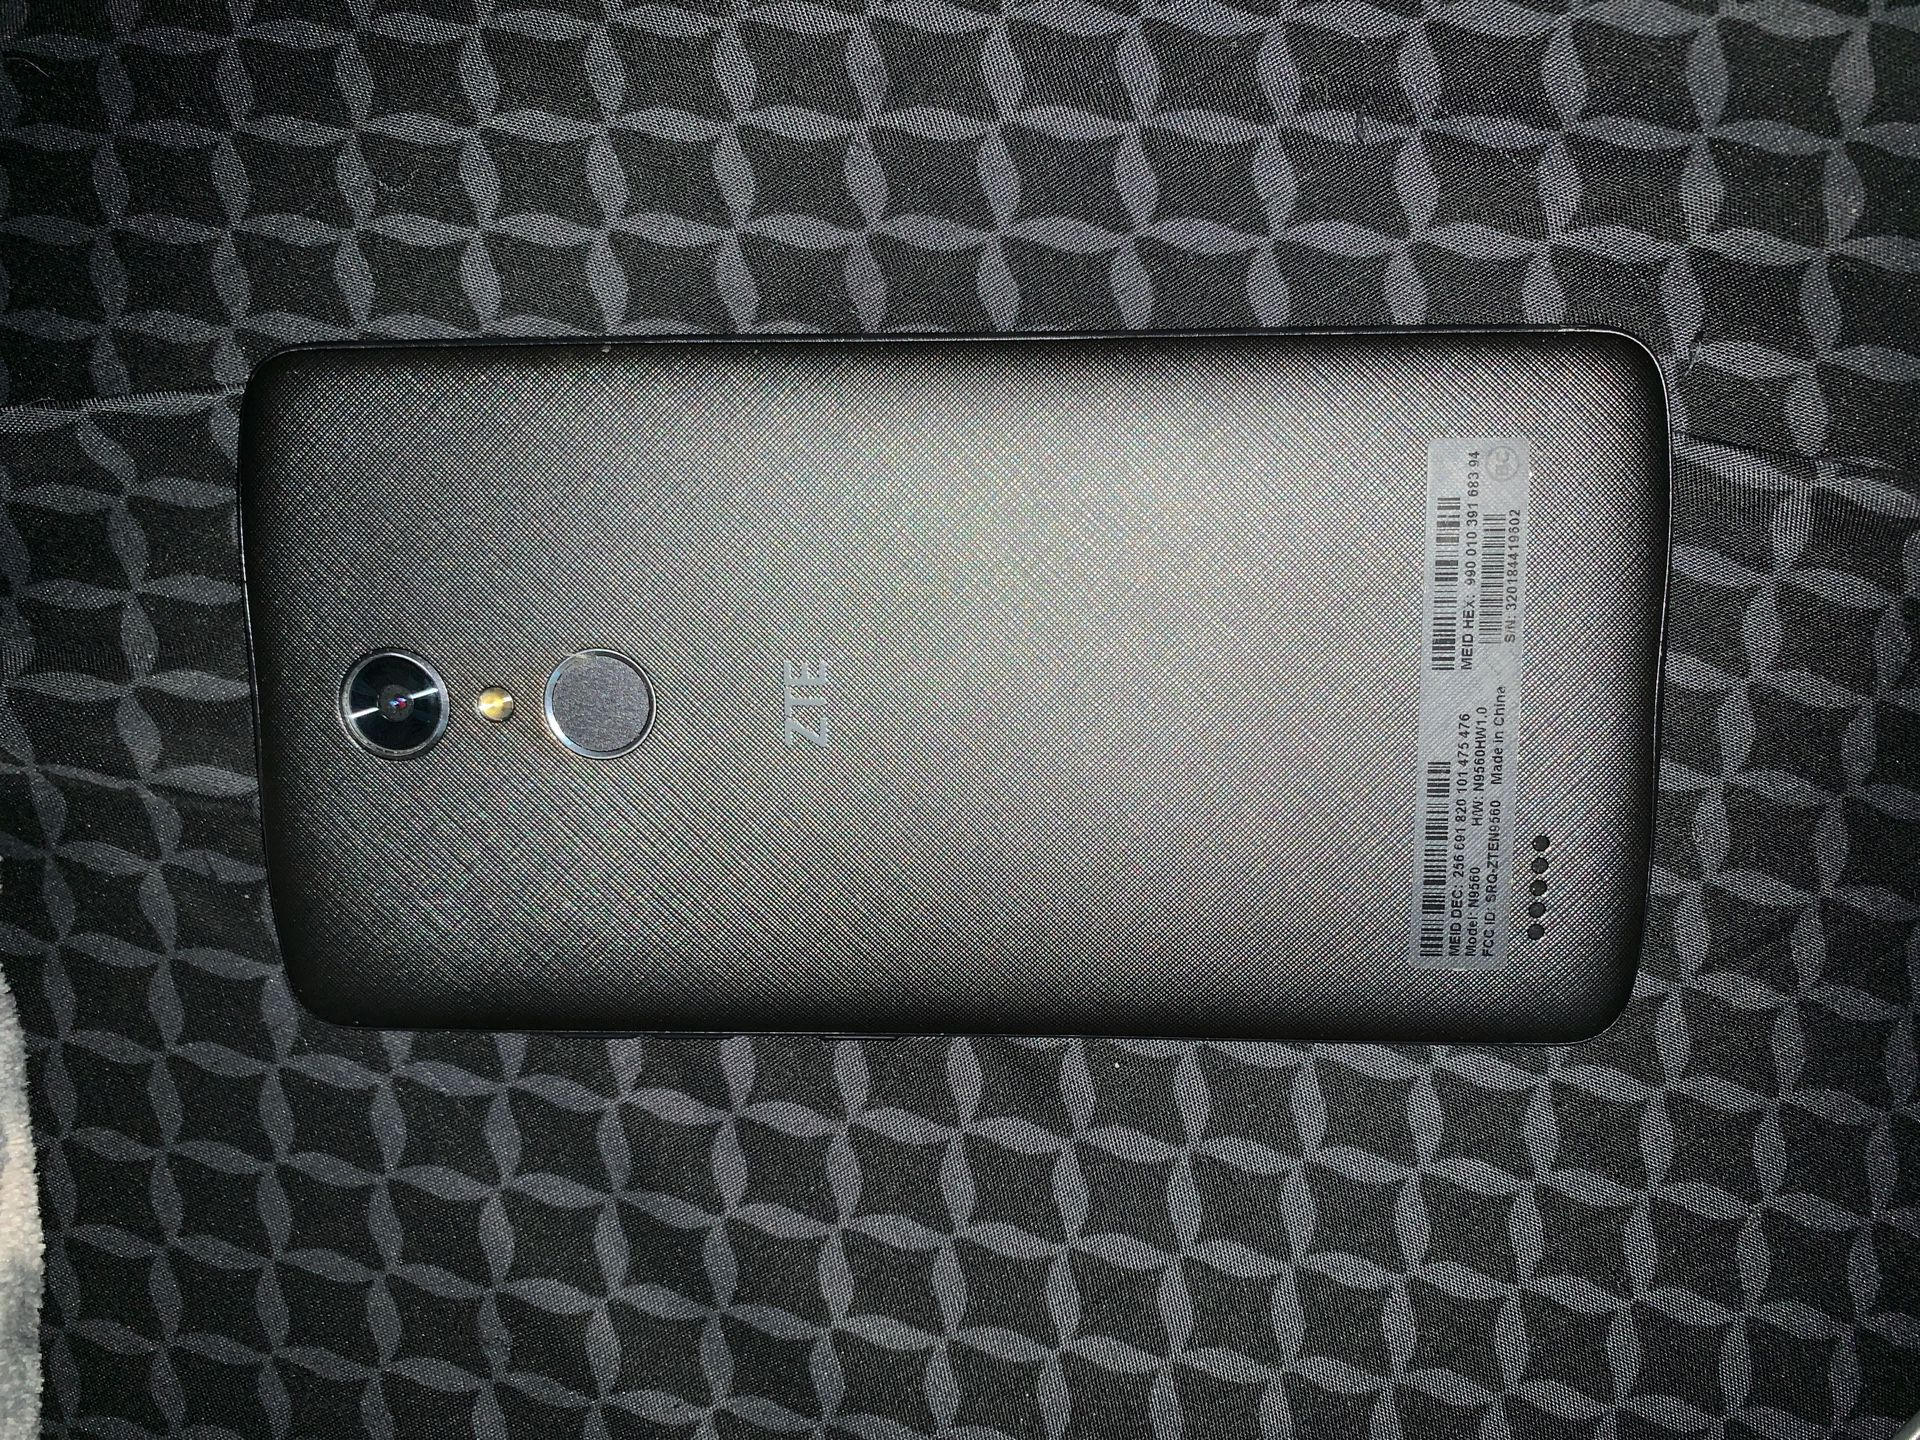 ZTE Max XL N9560 cellphone for sale